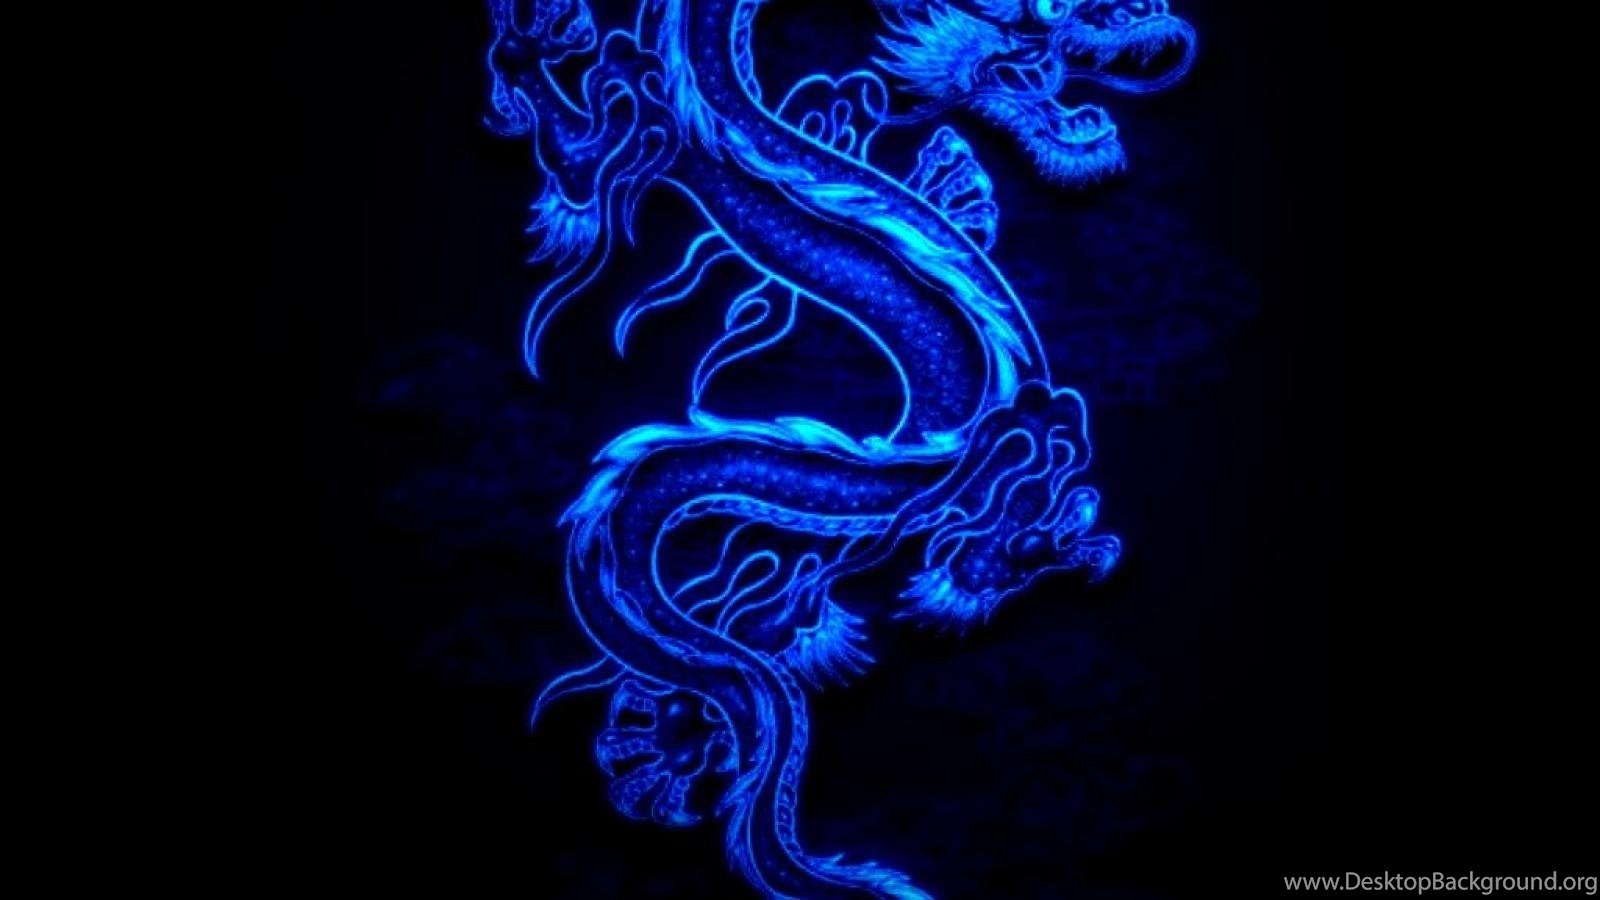 Cool Blue Dragon Black Fire Wallpaper Backgrounds Picture And Desktop Background